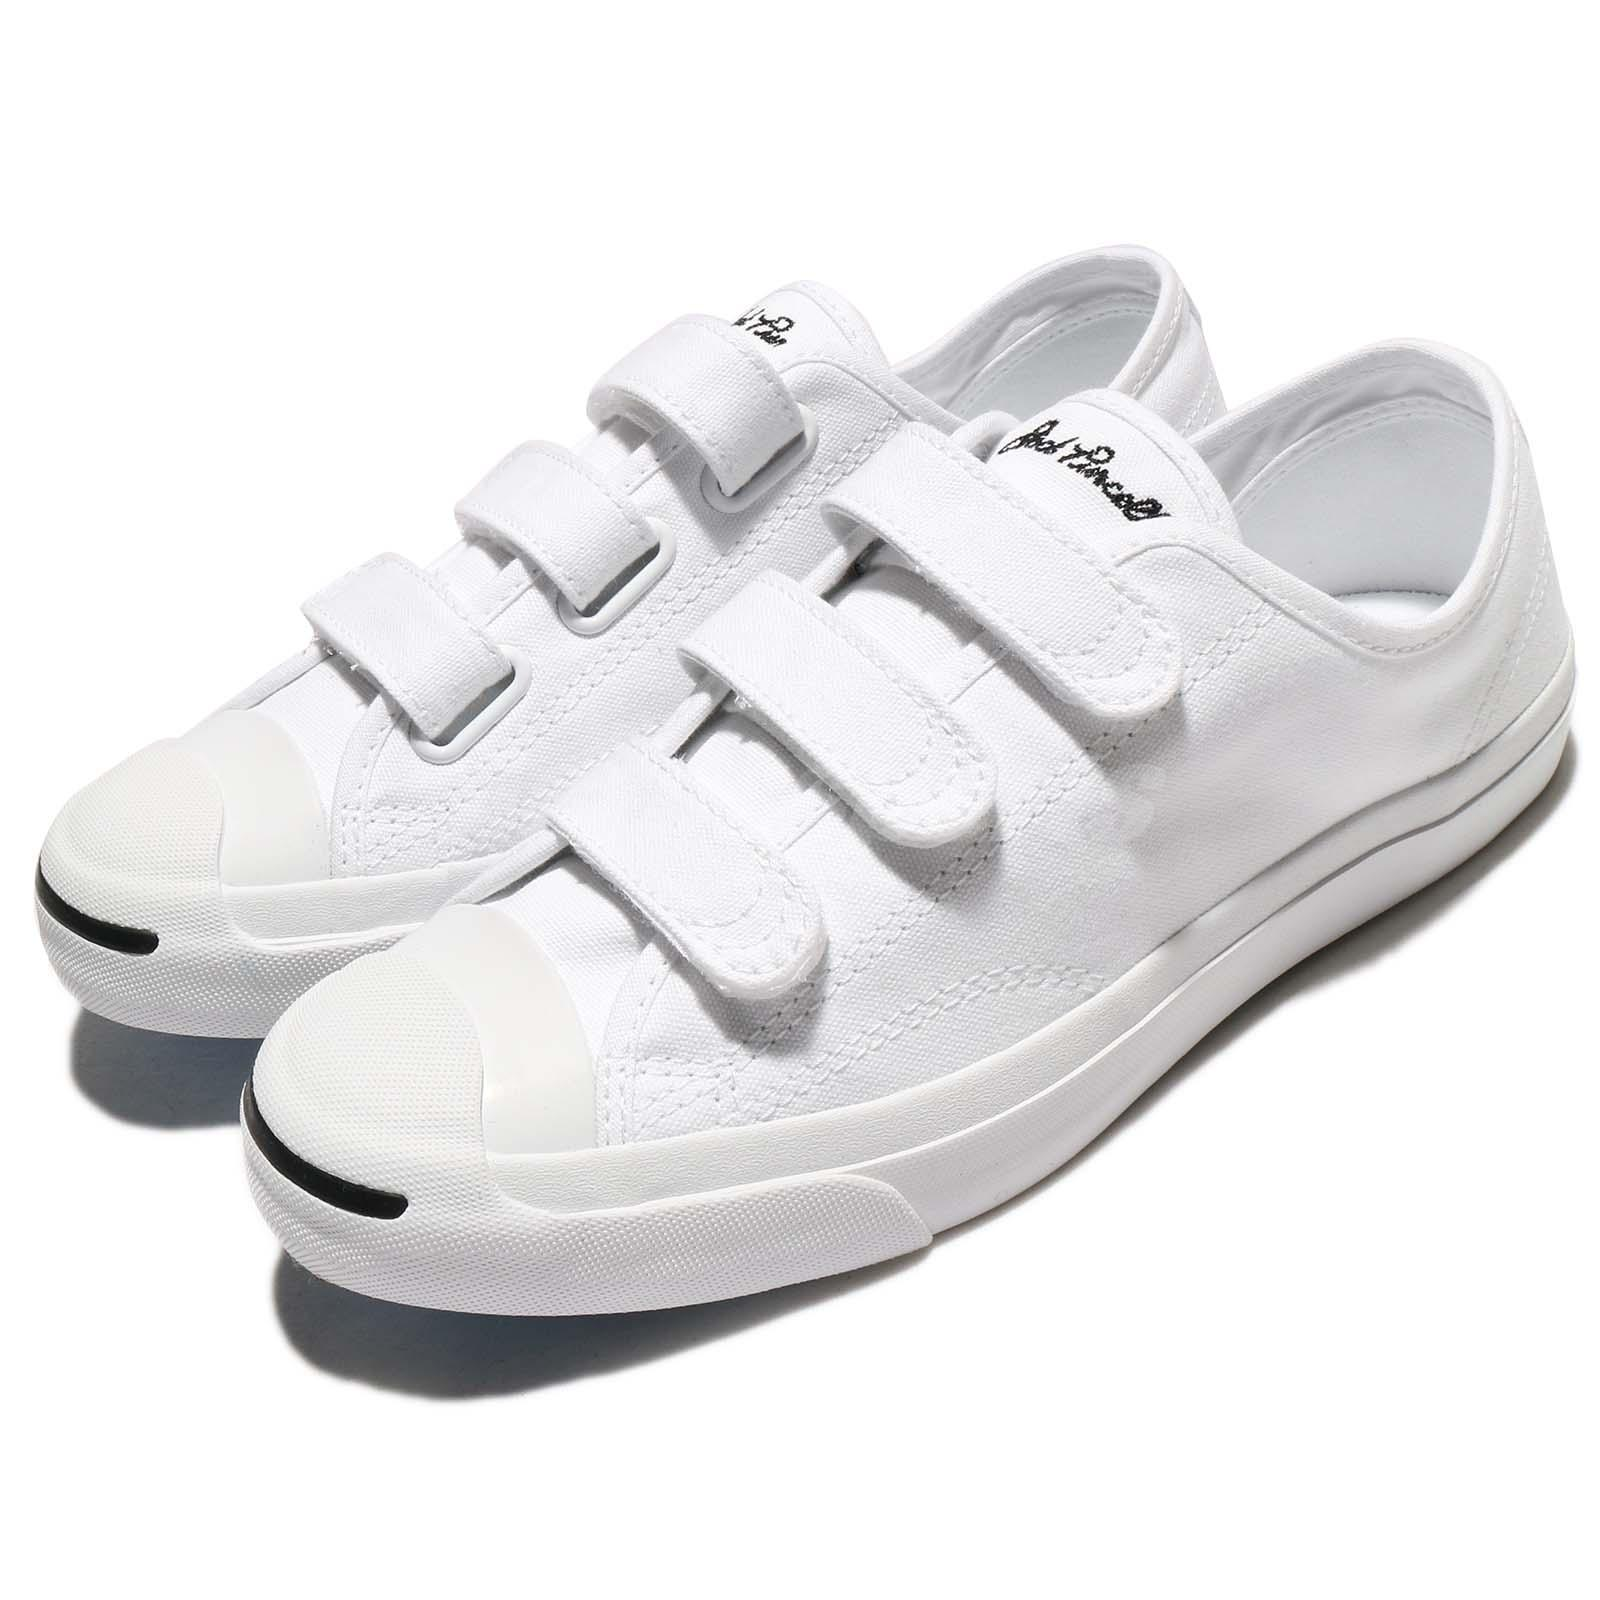 56d7ed80e14 Details about Converse Jack Purcell 3V Canvas White Men Women Shoes Sneakers  Trainers 160238C